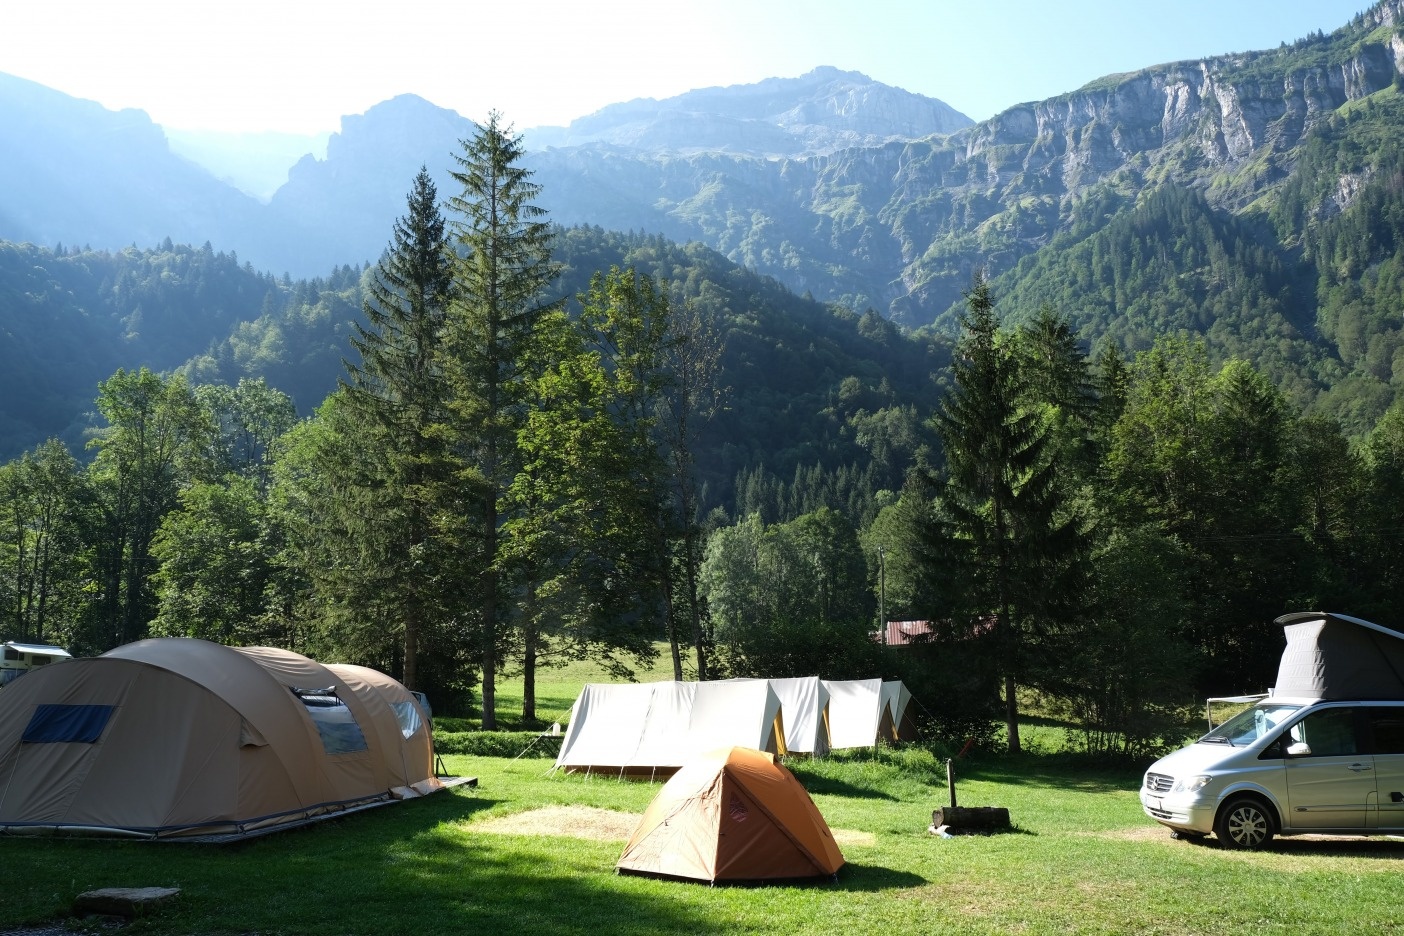 Tent camping in mountain campsite